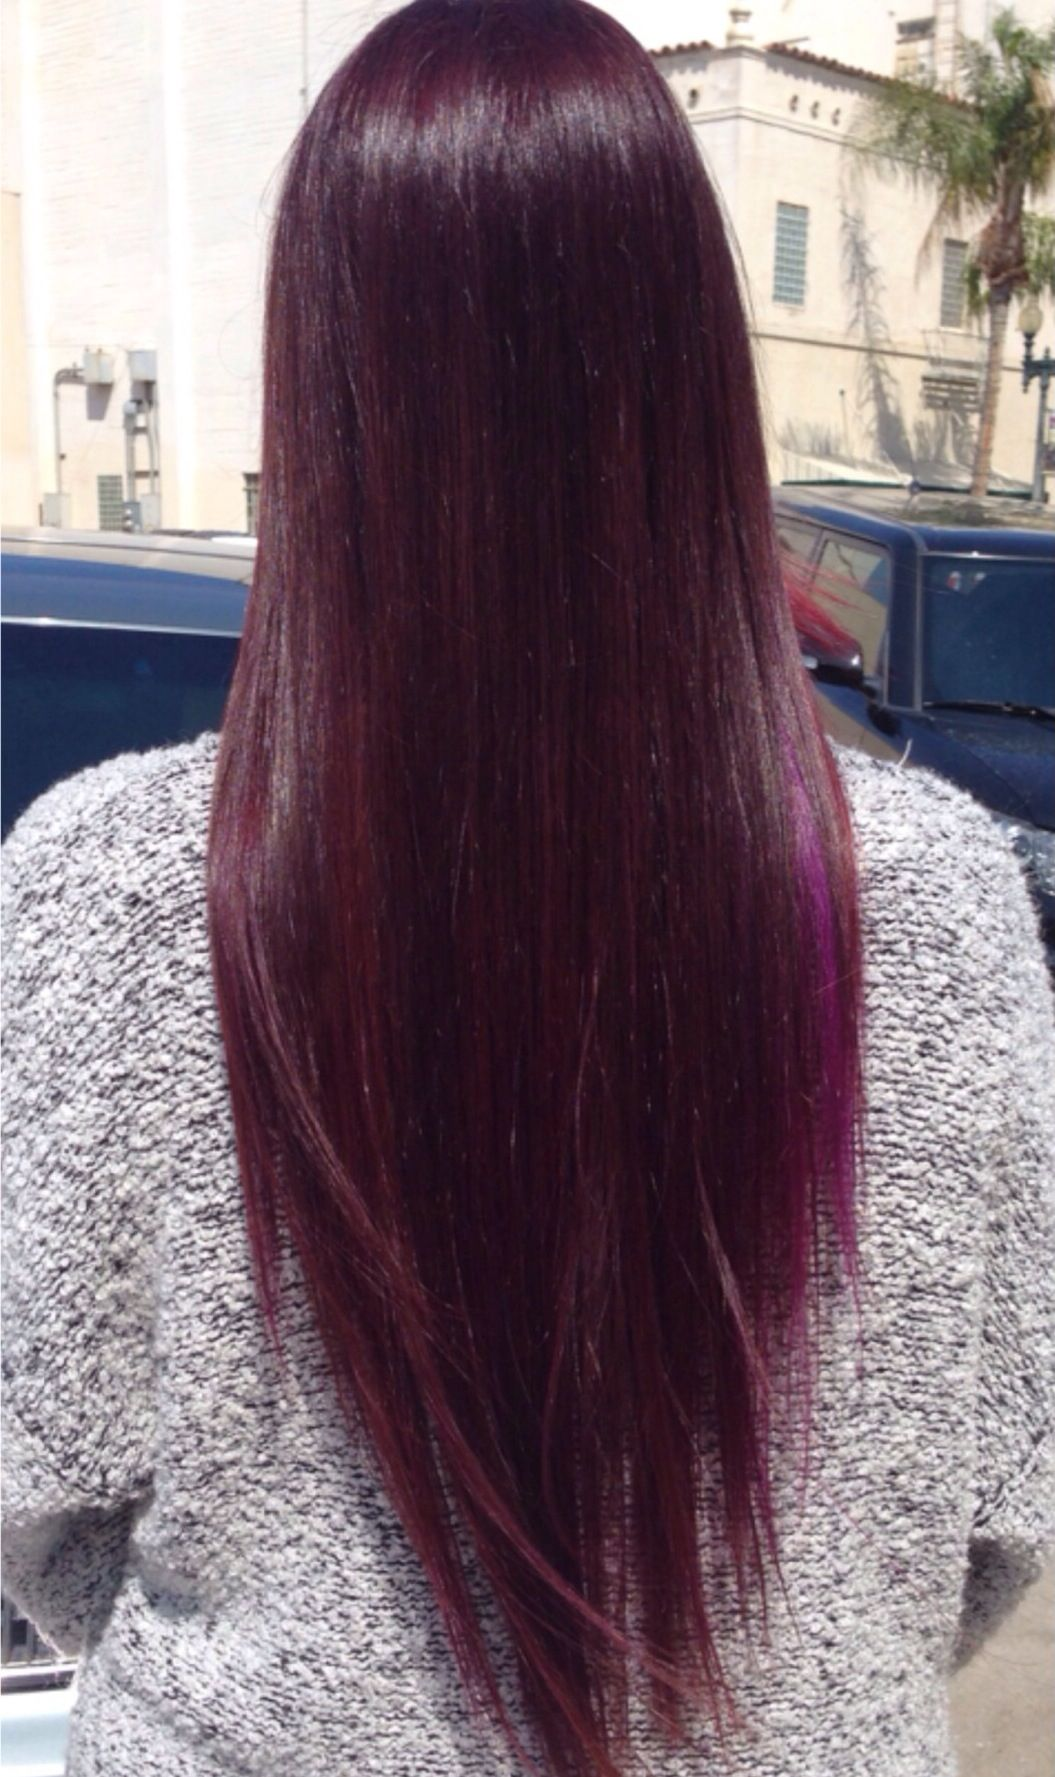 Dark Violet Hair Using Only Joico S 4fv Wild Orchid This Is My